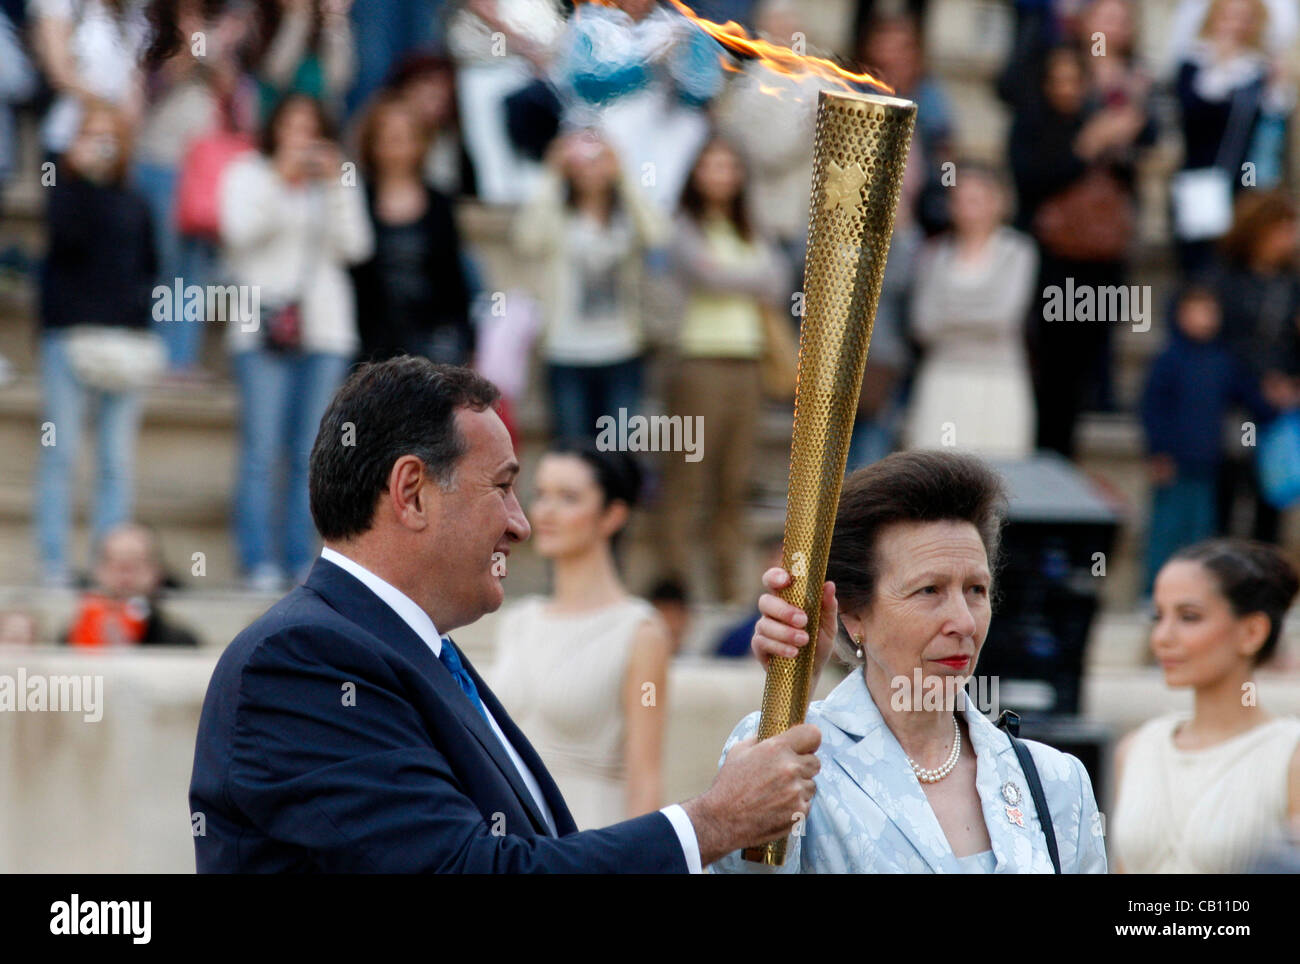 May 17, 2012 - Athens, Greece - Britain's Princess ANNE, holds the torch with the Olympic Flame at the handover Stock Photo